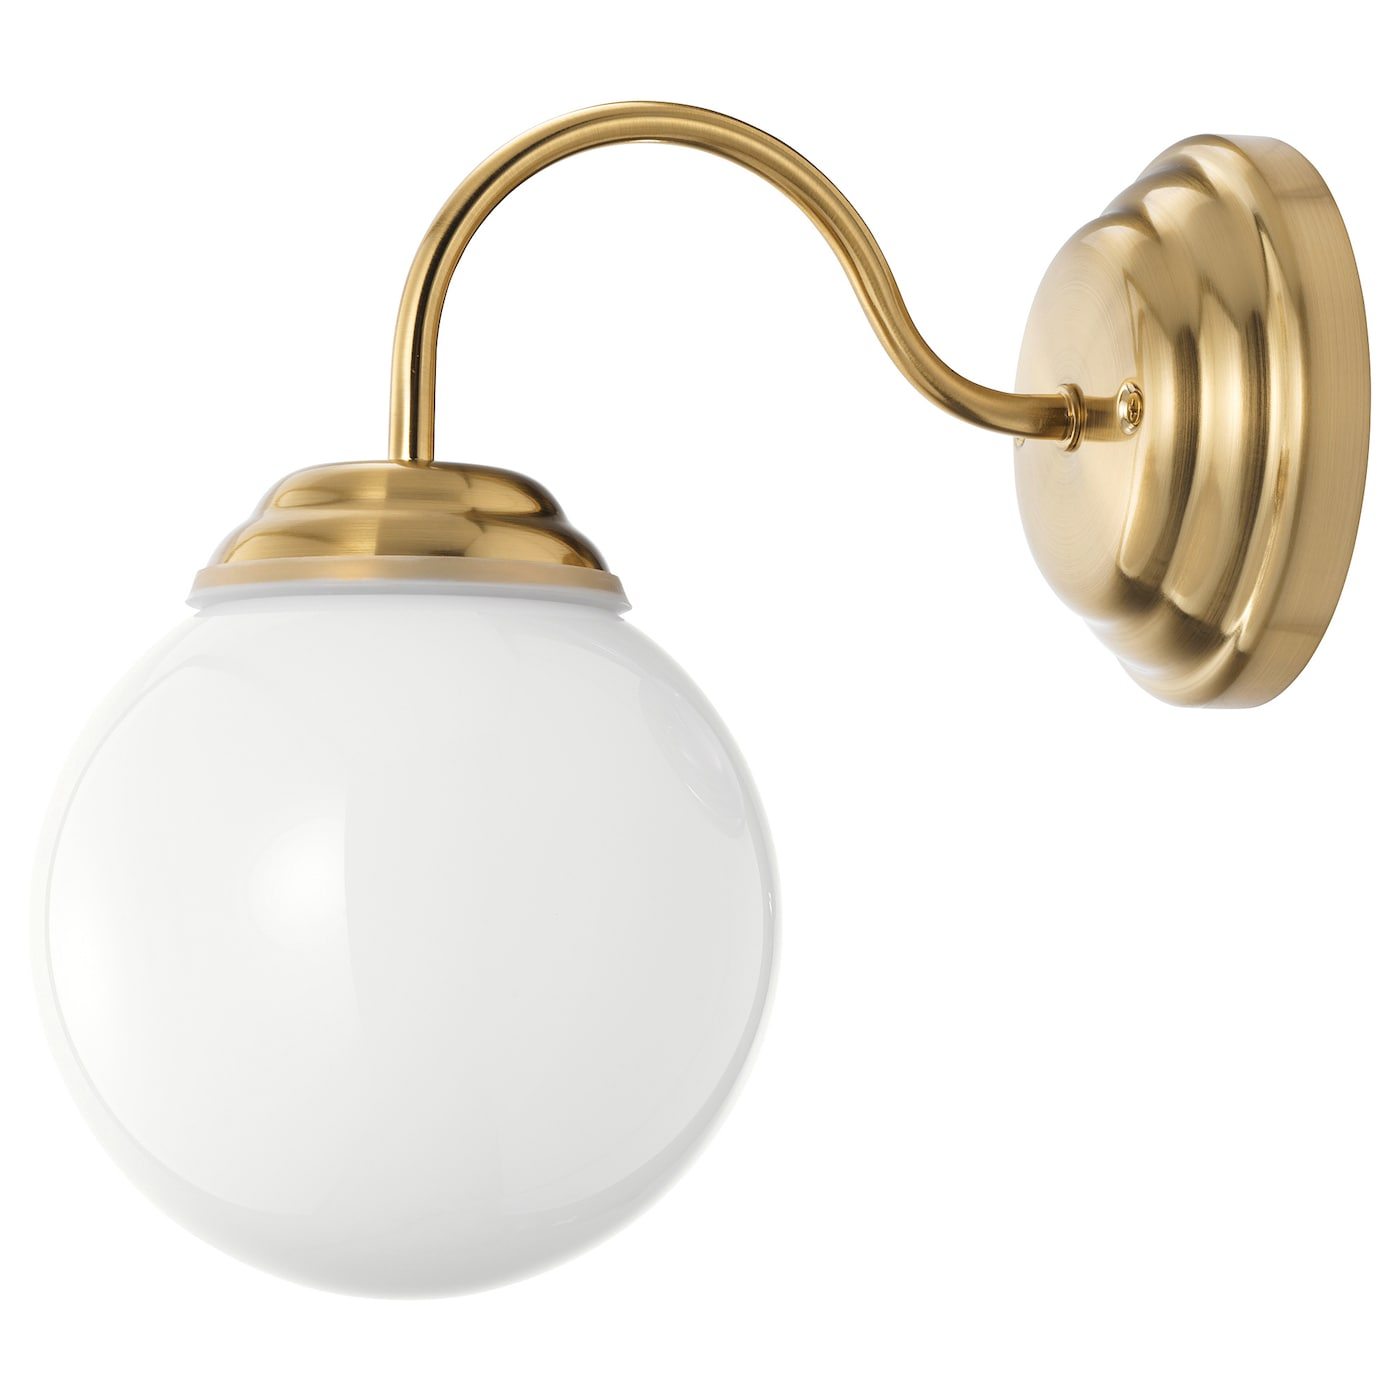 Bathroom Lighting Lights Ikea Porcelain Wall Light Wiring Diagram Lillholmen Lamp Flexible Can Be Mounted With The Turned Downwards Or Upwards